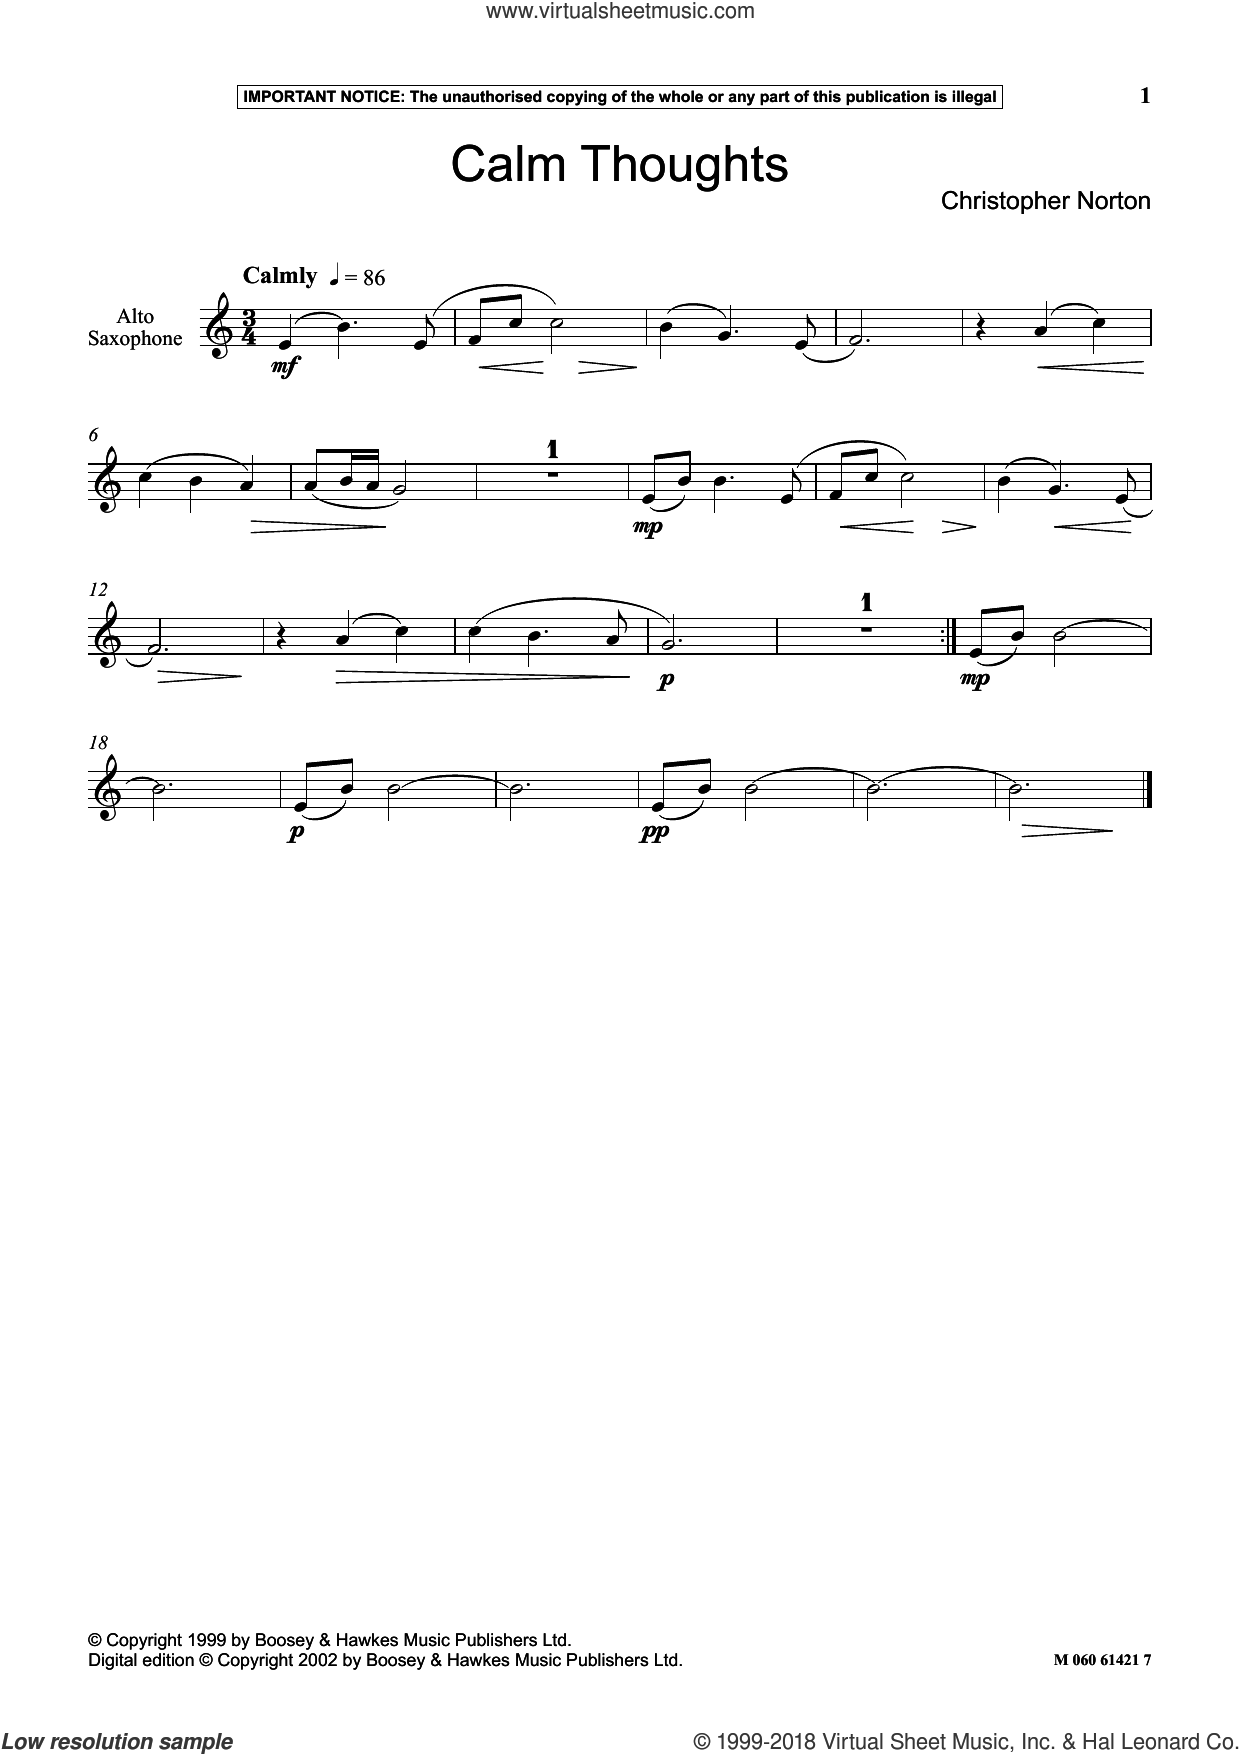 Calm Thoughts sheet music for alto saxophone solo by Christopher Norton, classical score, intermediate skill level